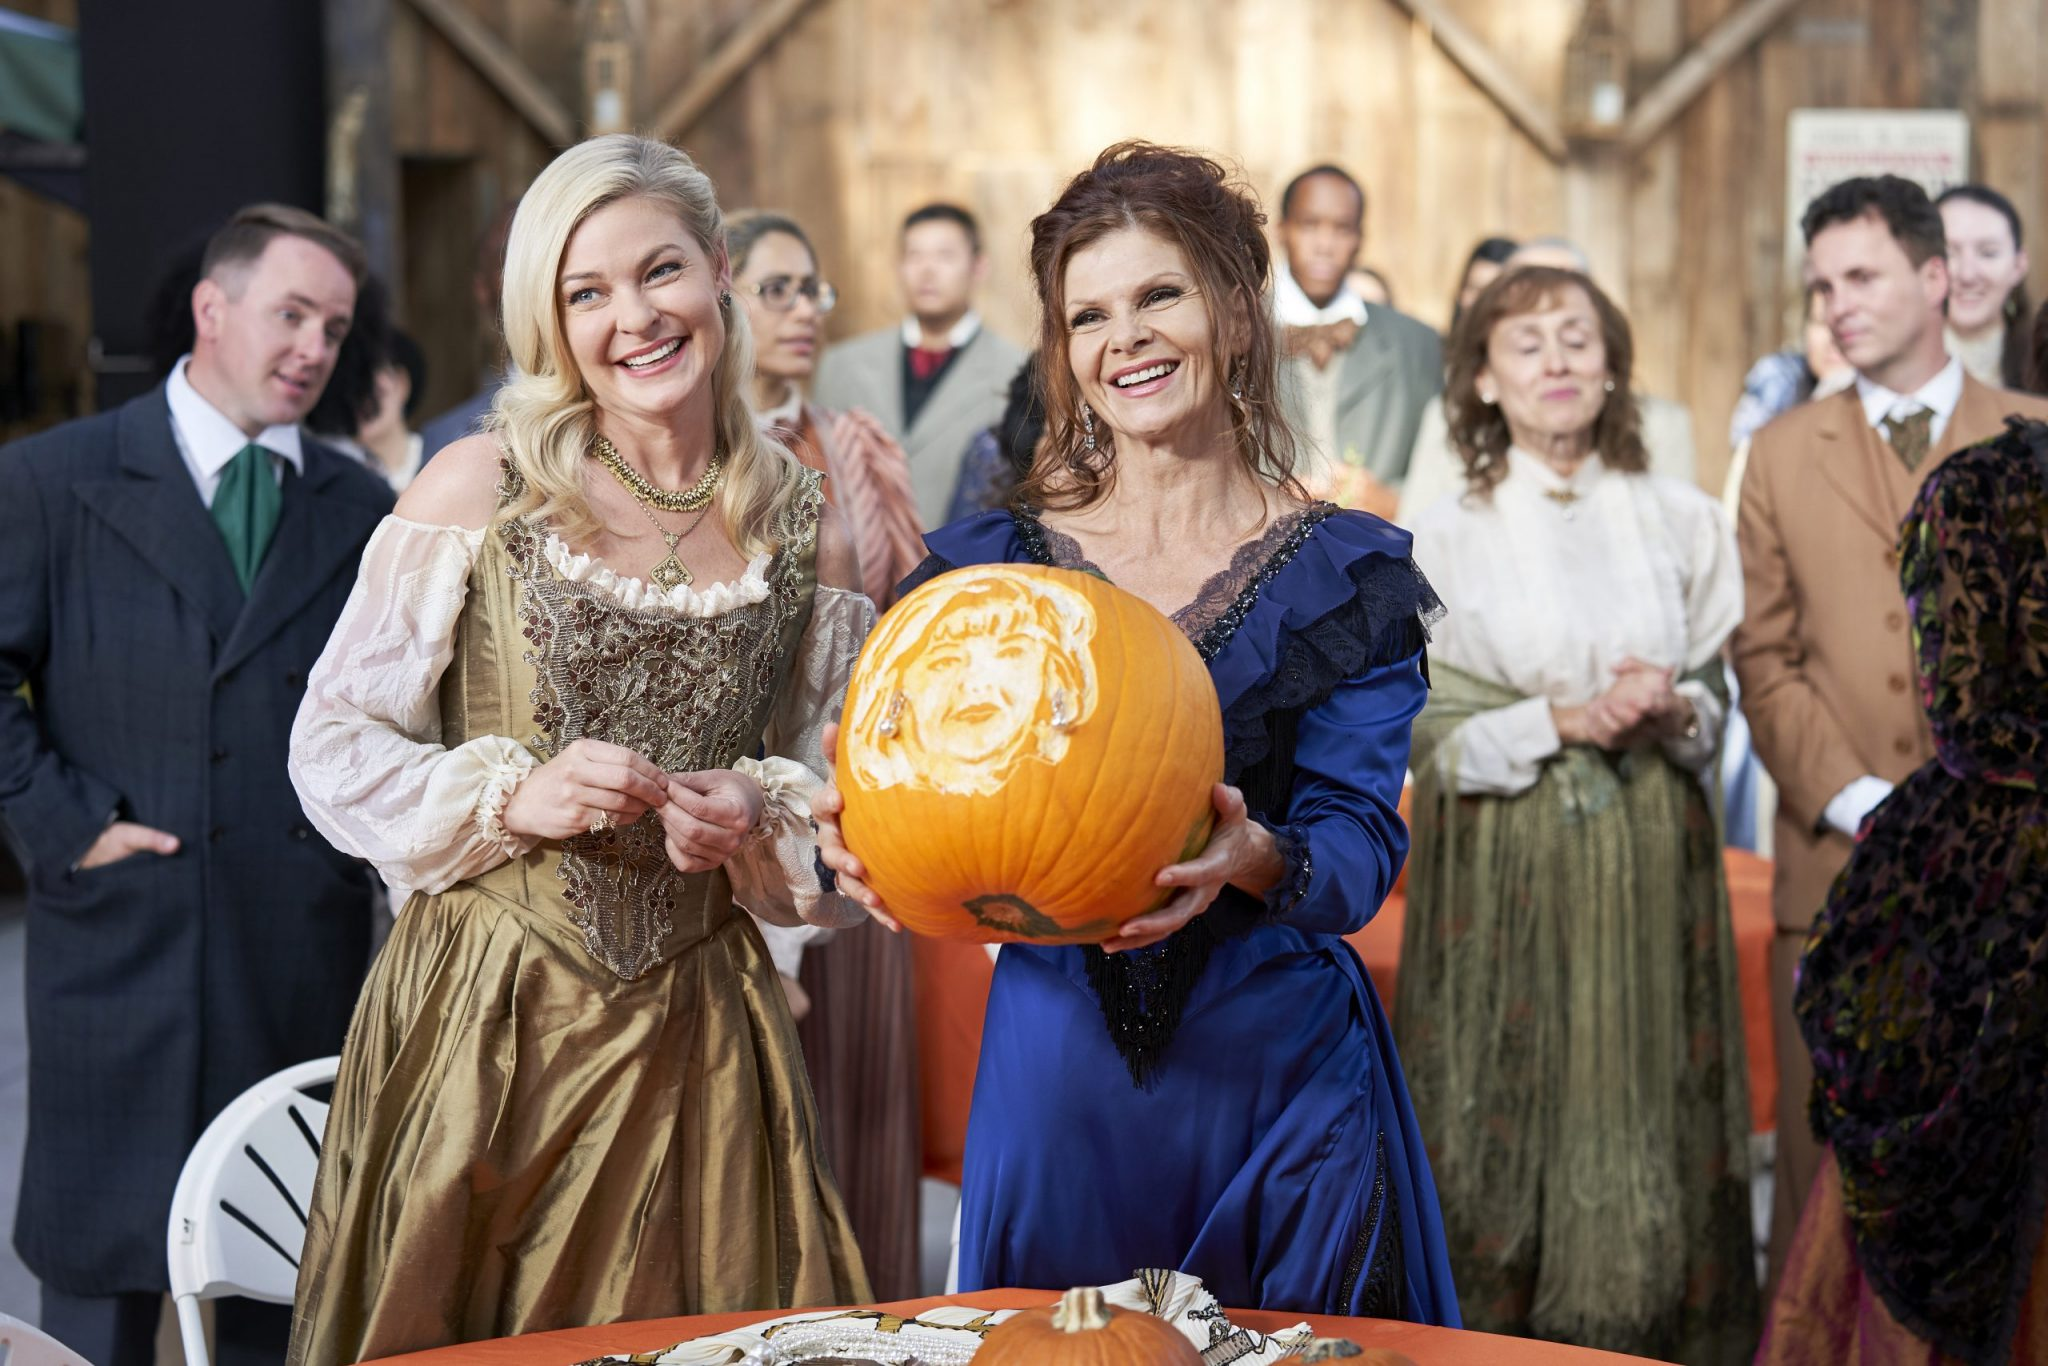 The Good Witch Halloween Special 2020 Will Hallmark Do A 'Good Witch' Halloween Special Movie For 2020?